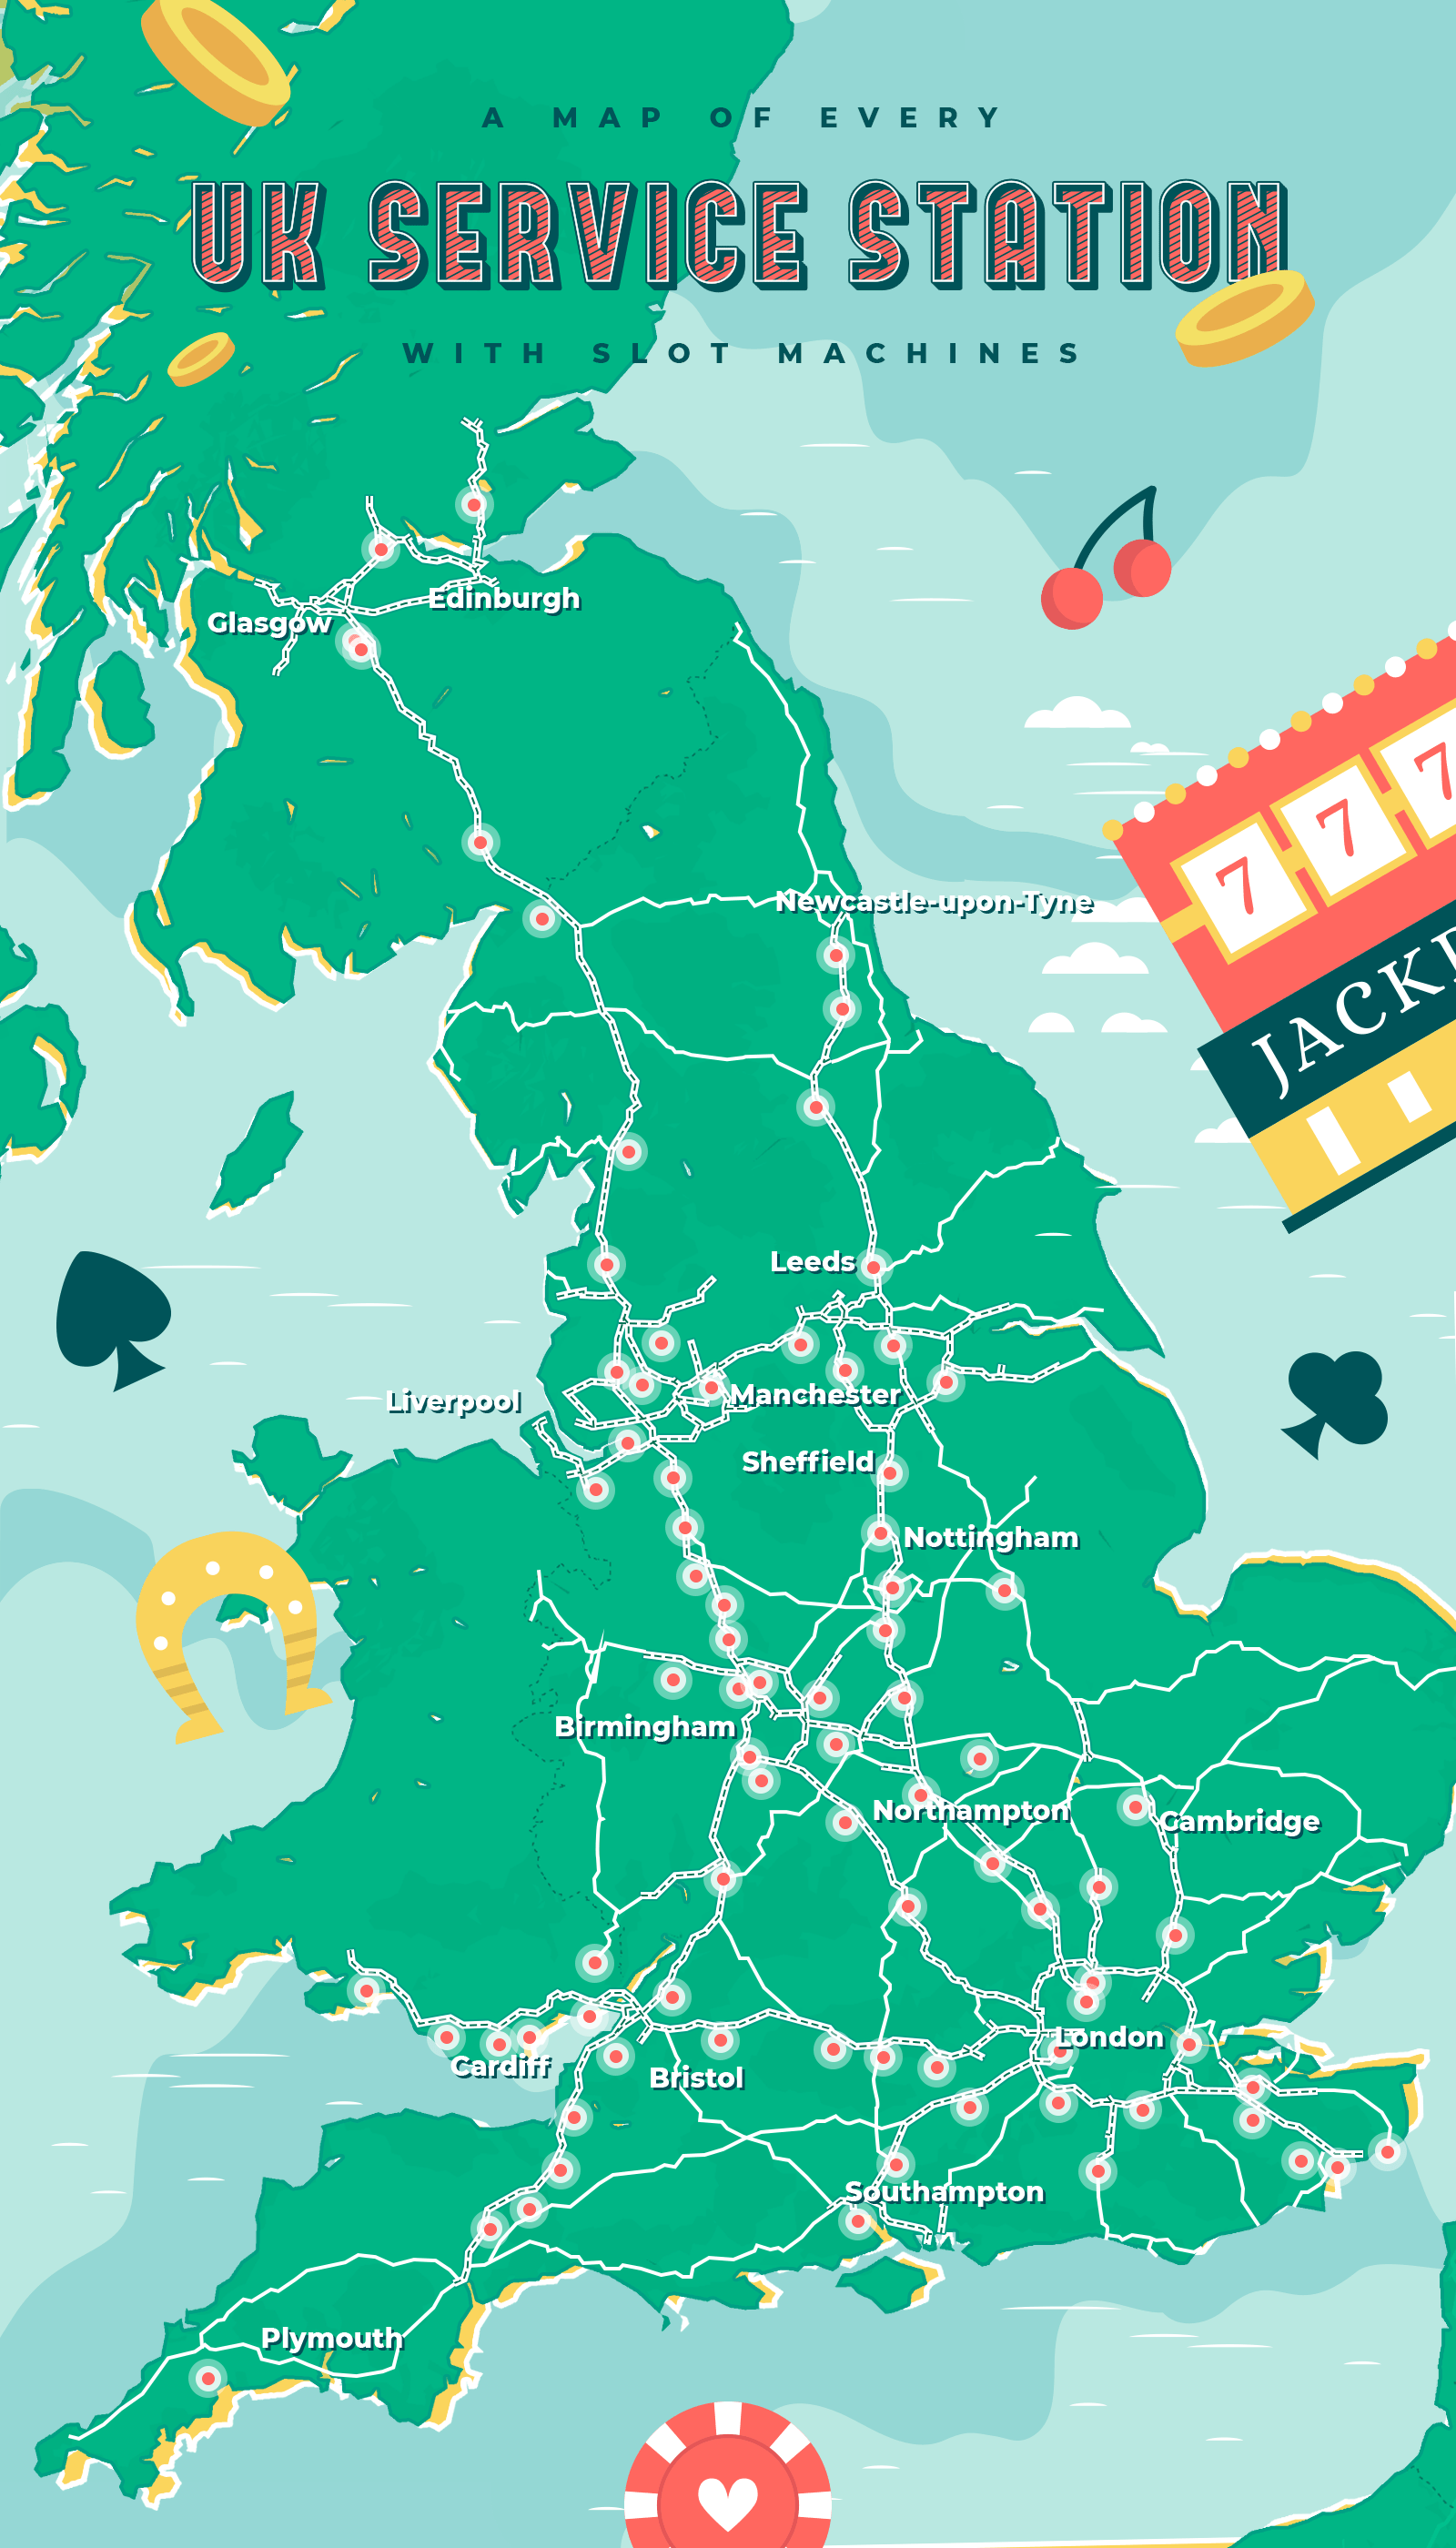 Map of UK service stations with slot machines